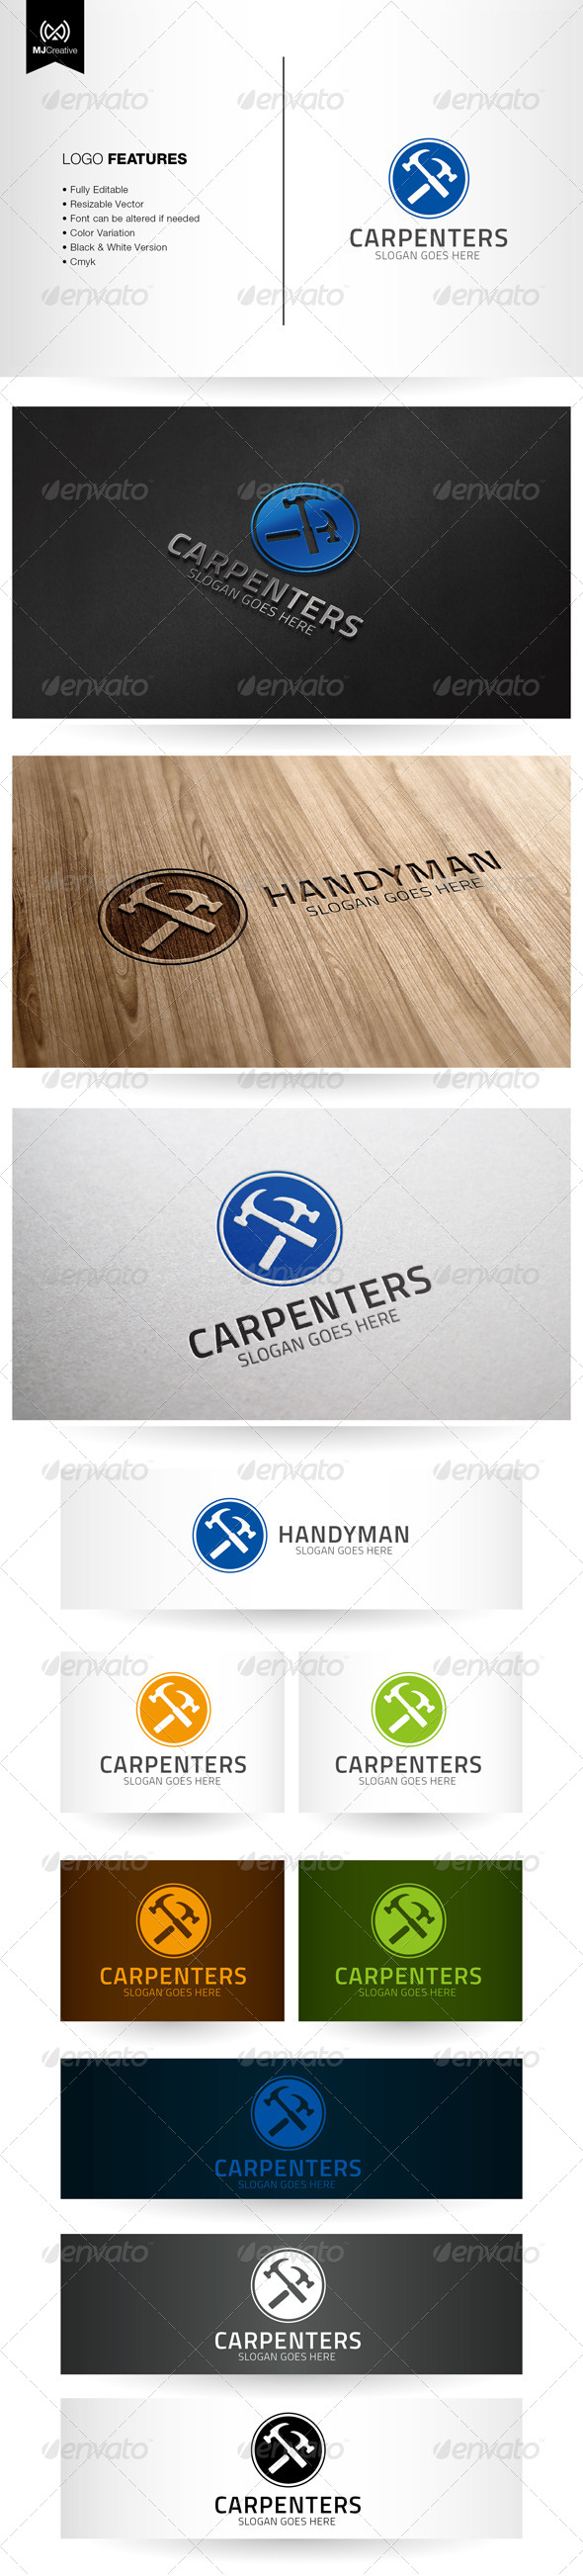 GraphicRiver Handyman and Carpentry Logo 5592054